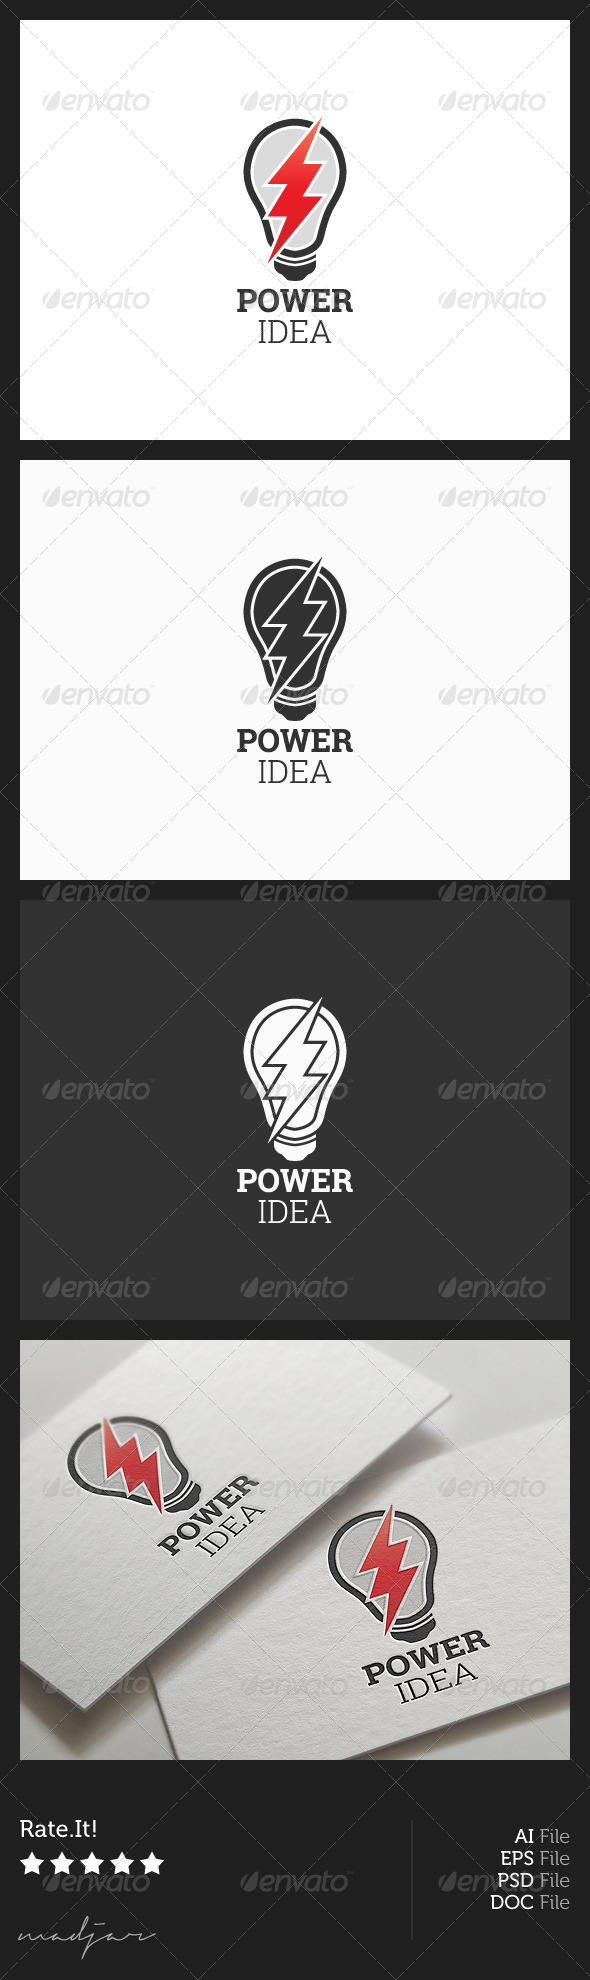 GraphicRiver Power Idea Logo 5921546